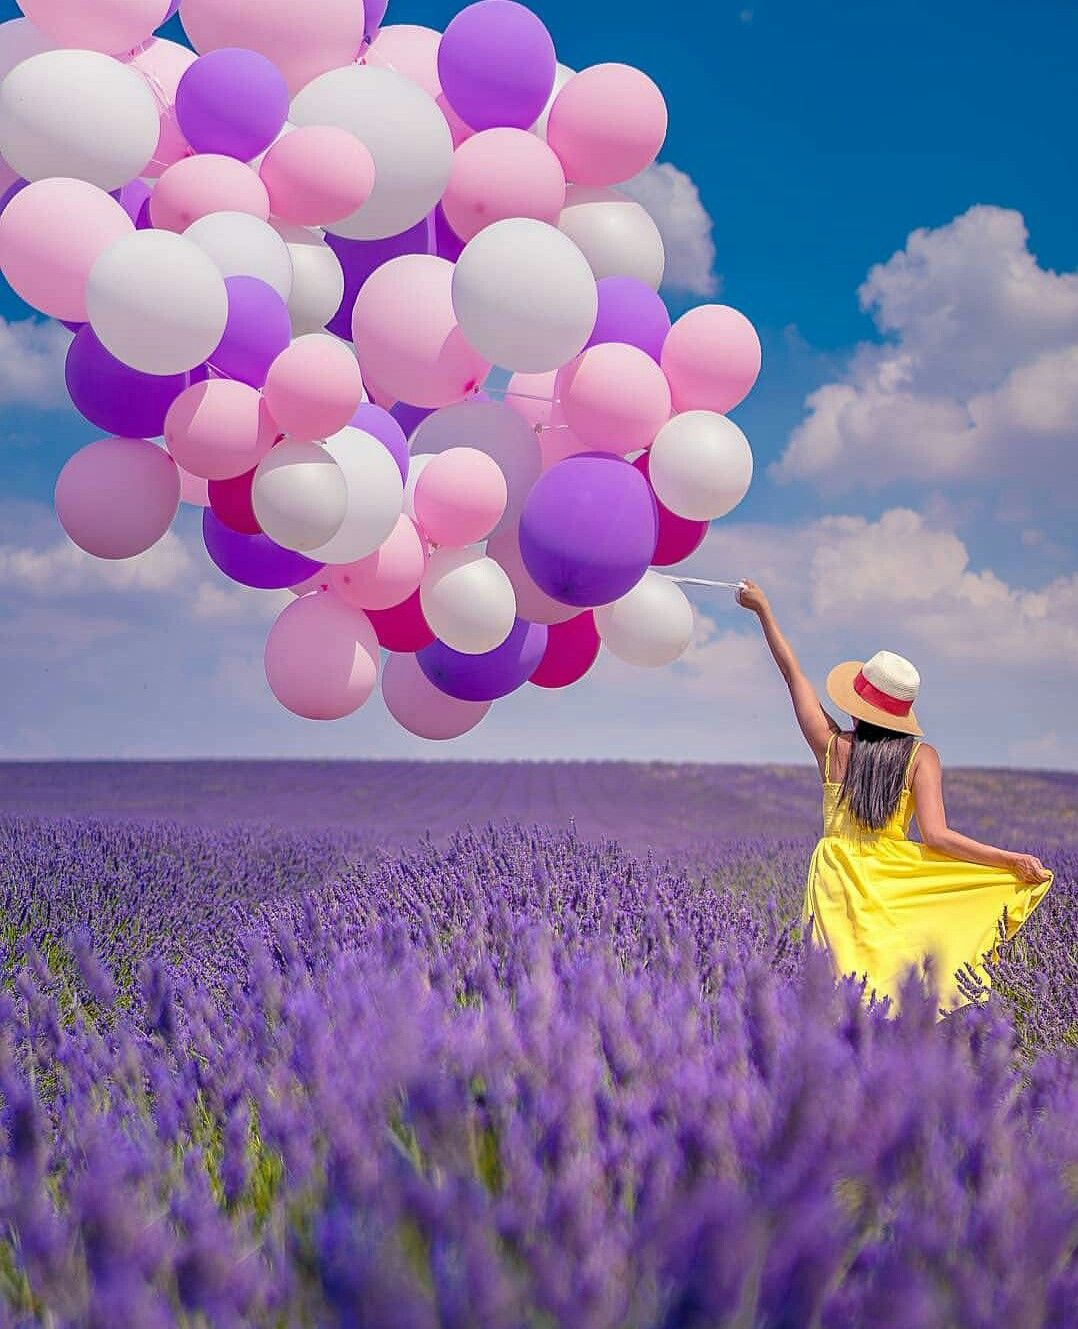 400+Pin by Pavla Beckers on foto   Balloons photography, Balloons ...